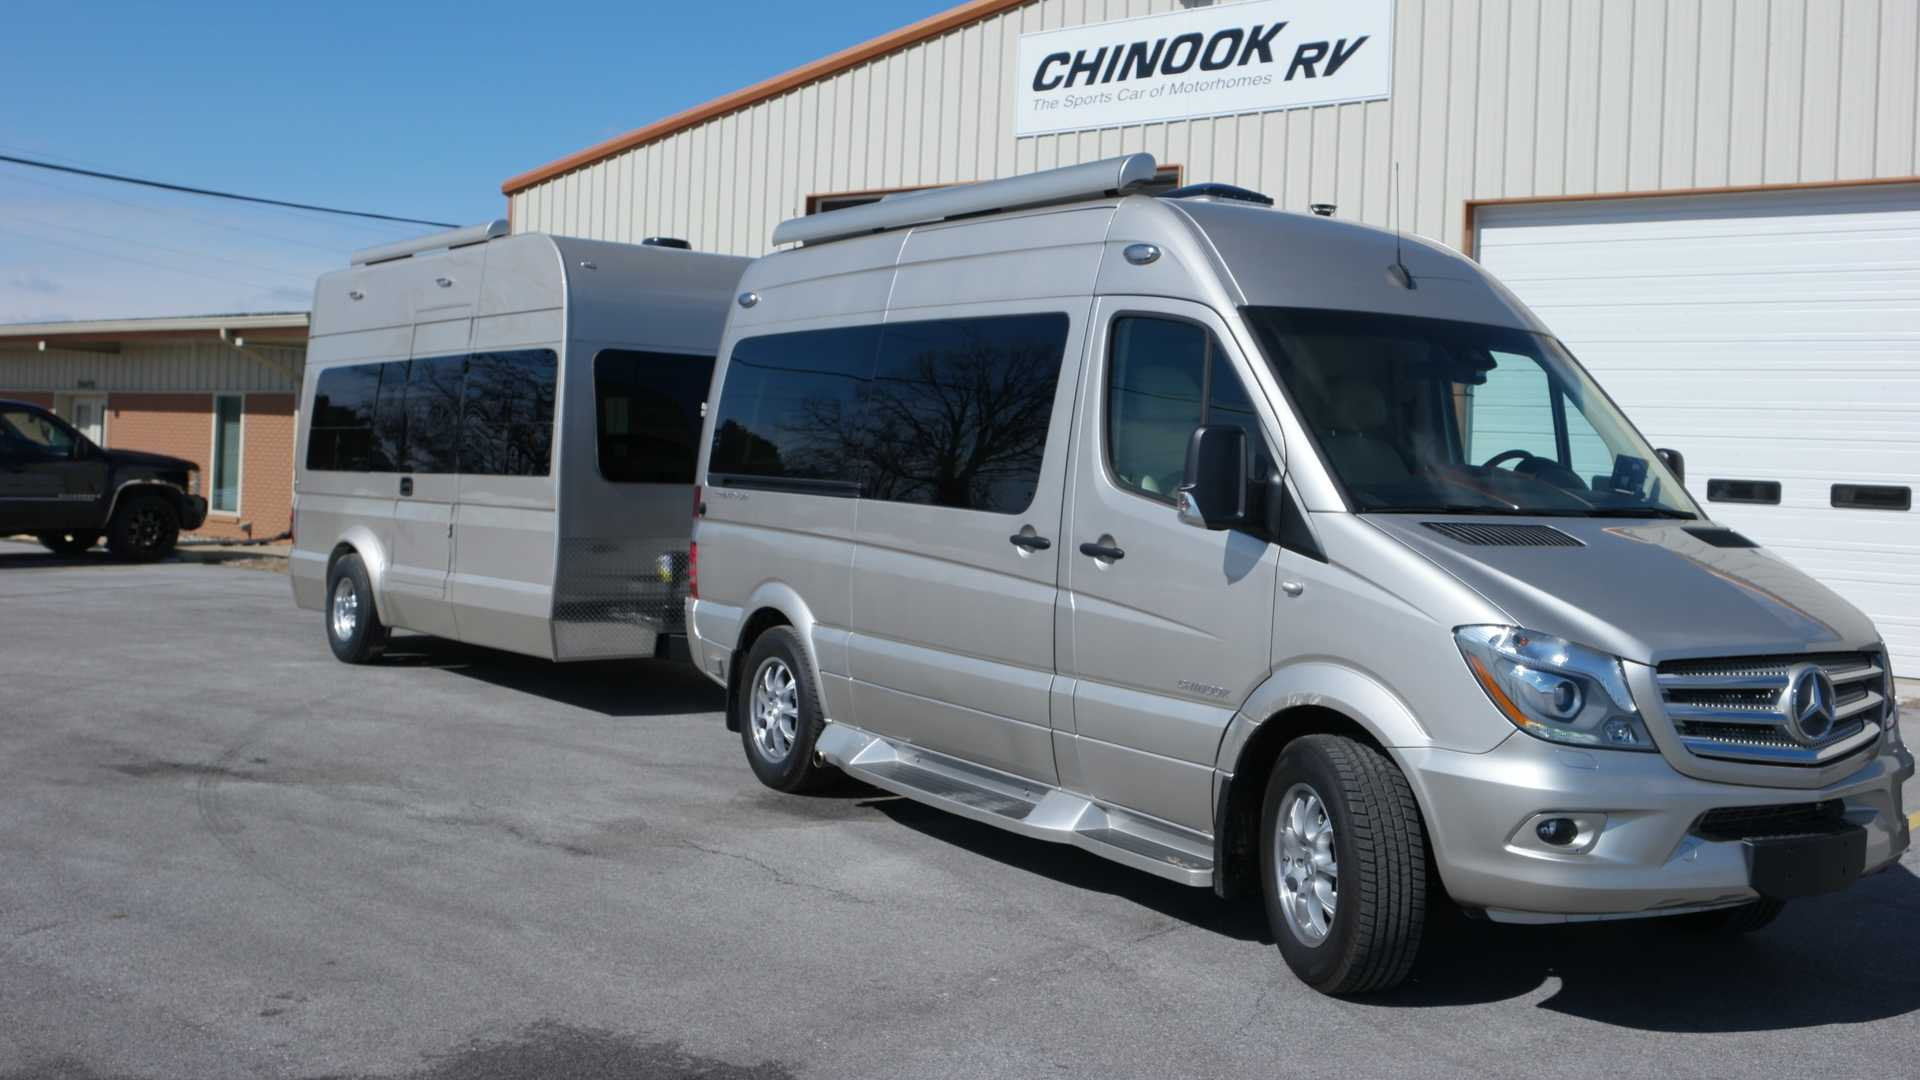 Mercedes Benz Sprinter Rv >> There S A Matching Trailer For Your Mercedes Sprinter Camper Van